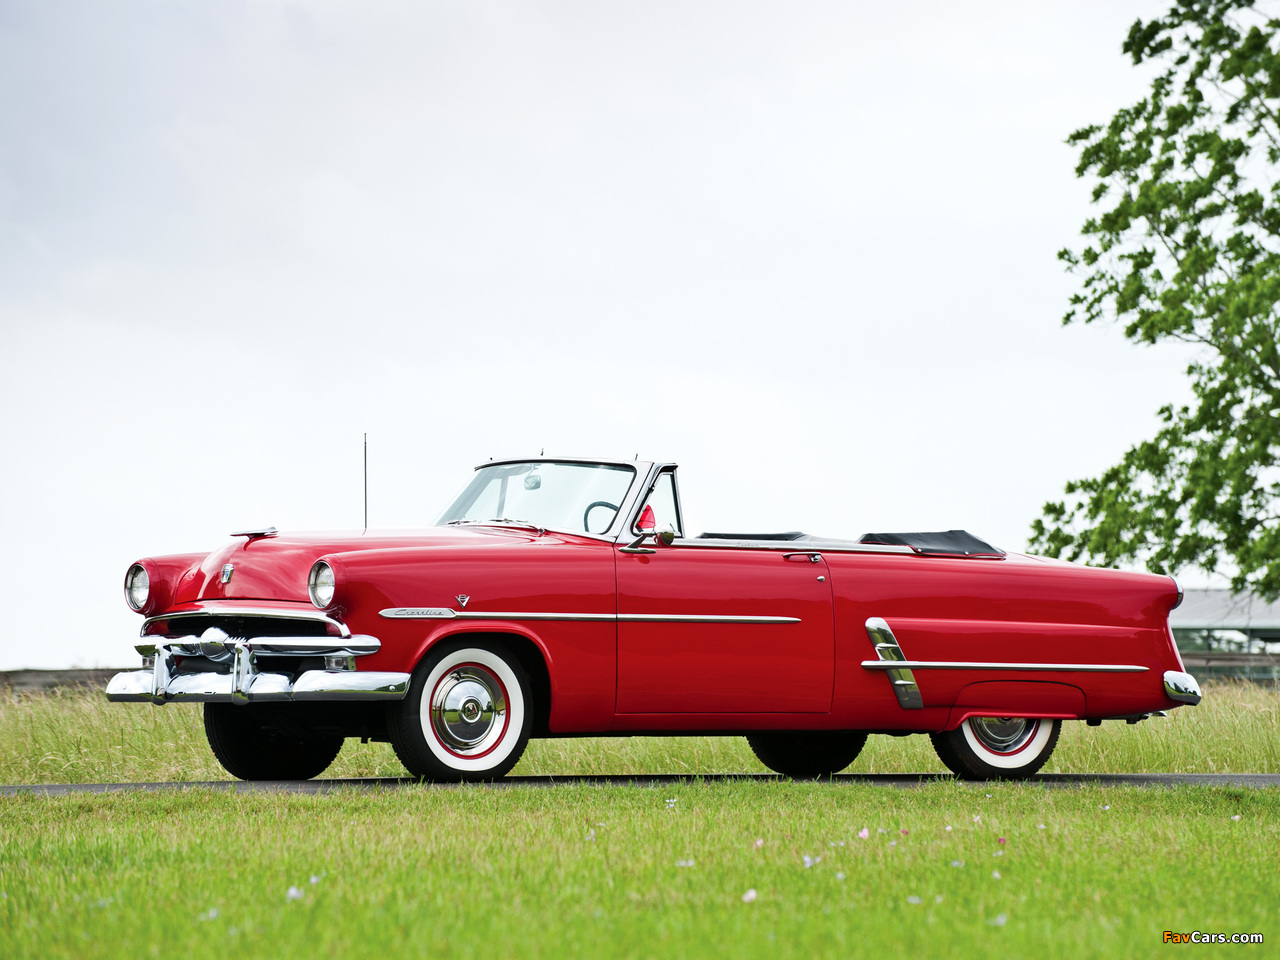 Ford Crestline Sunliner Convertible Coupe (76B) 1953 images (1280 x 960)